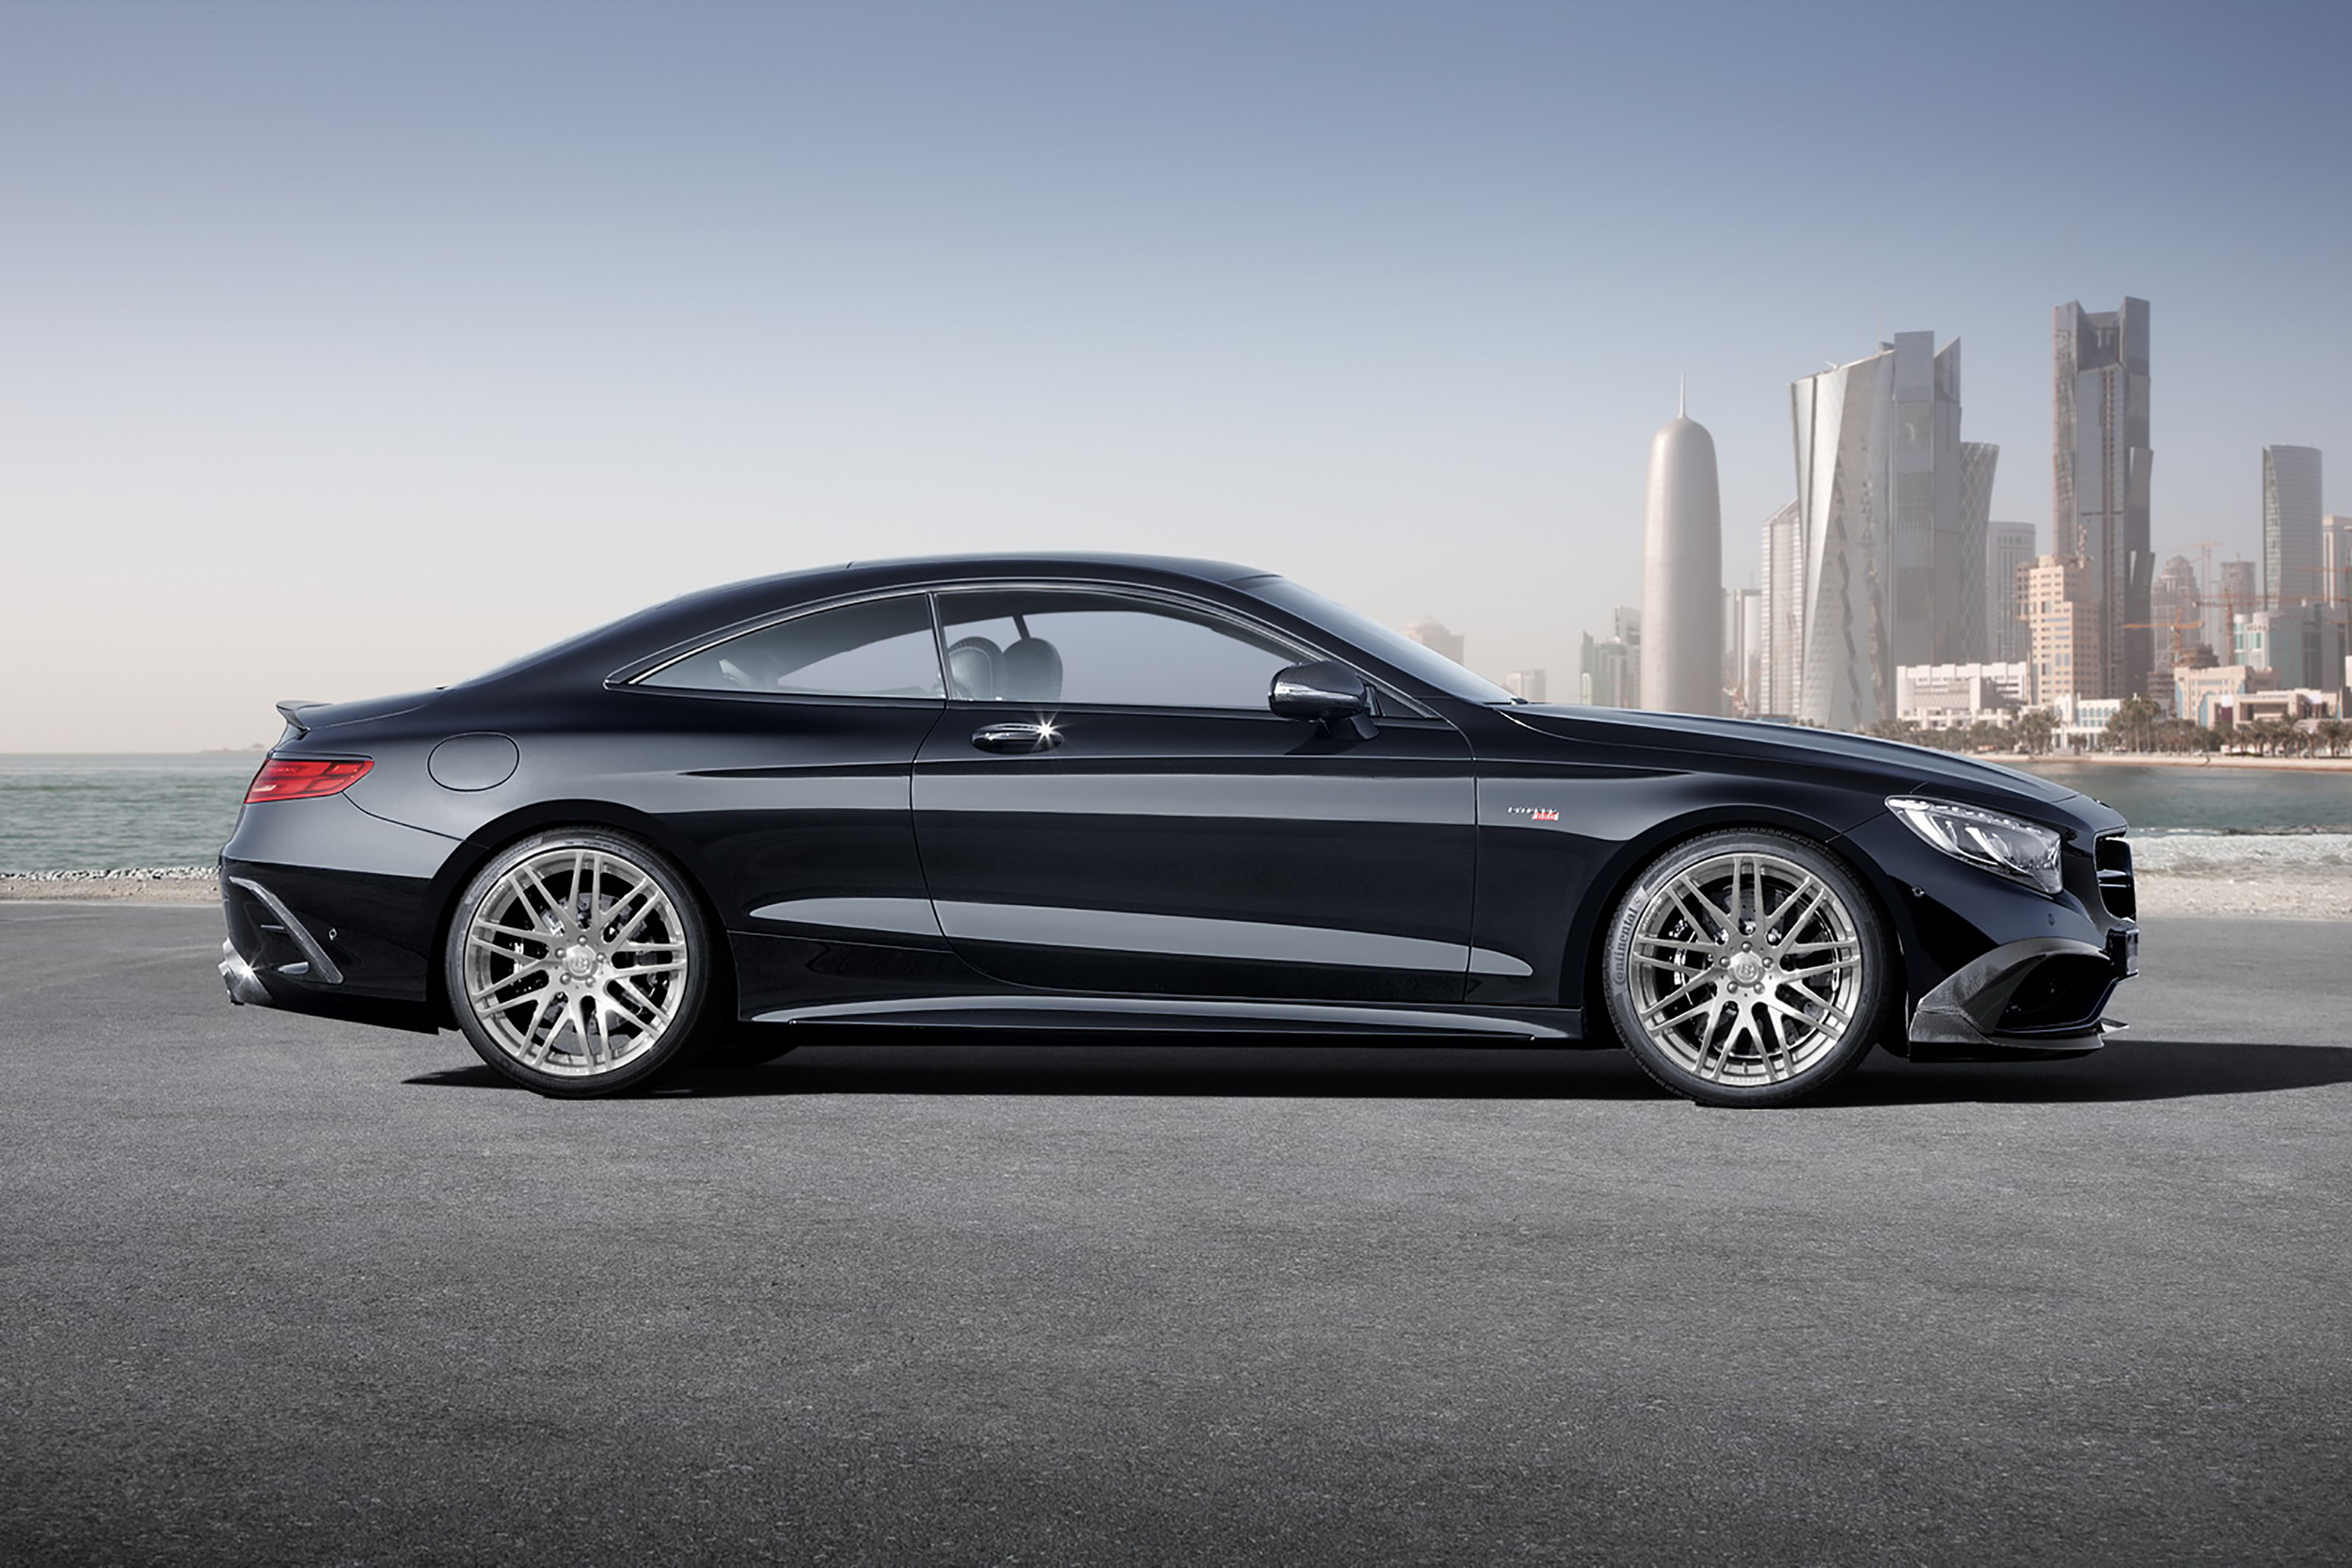 ' ' from the web at 'http://www.blogcdn.com/slideshows/images/slides/335/948/4/S3359484/slug/l/brabus-s-class-coupe-15-1.jpg'